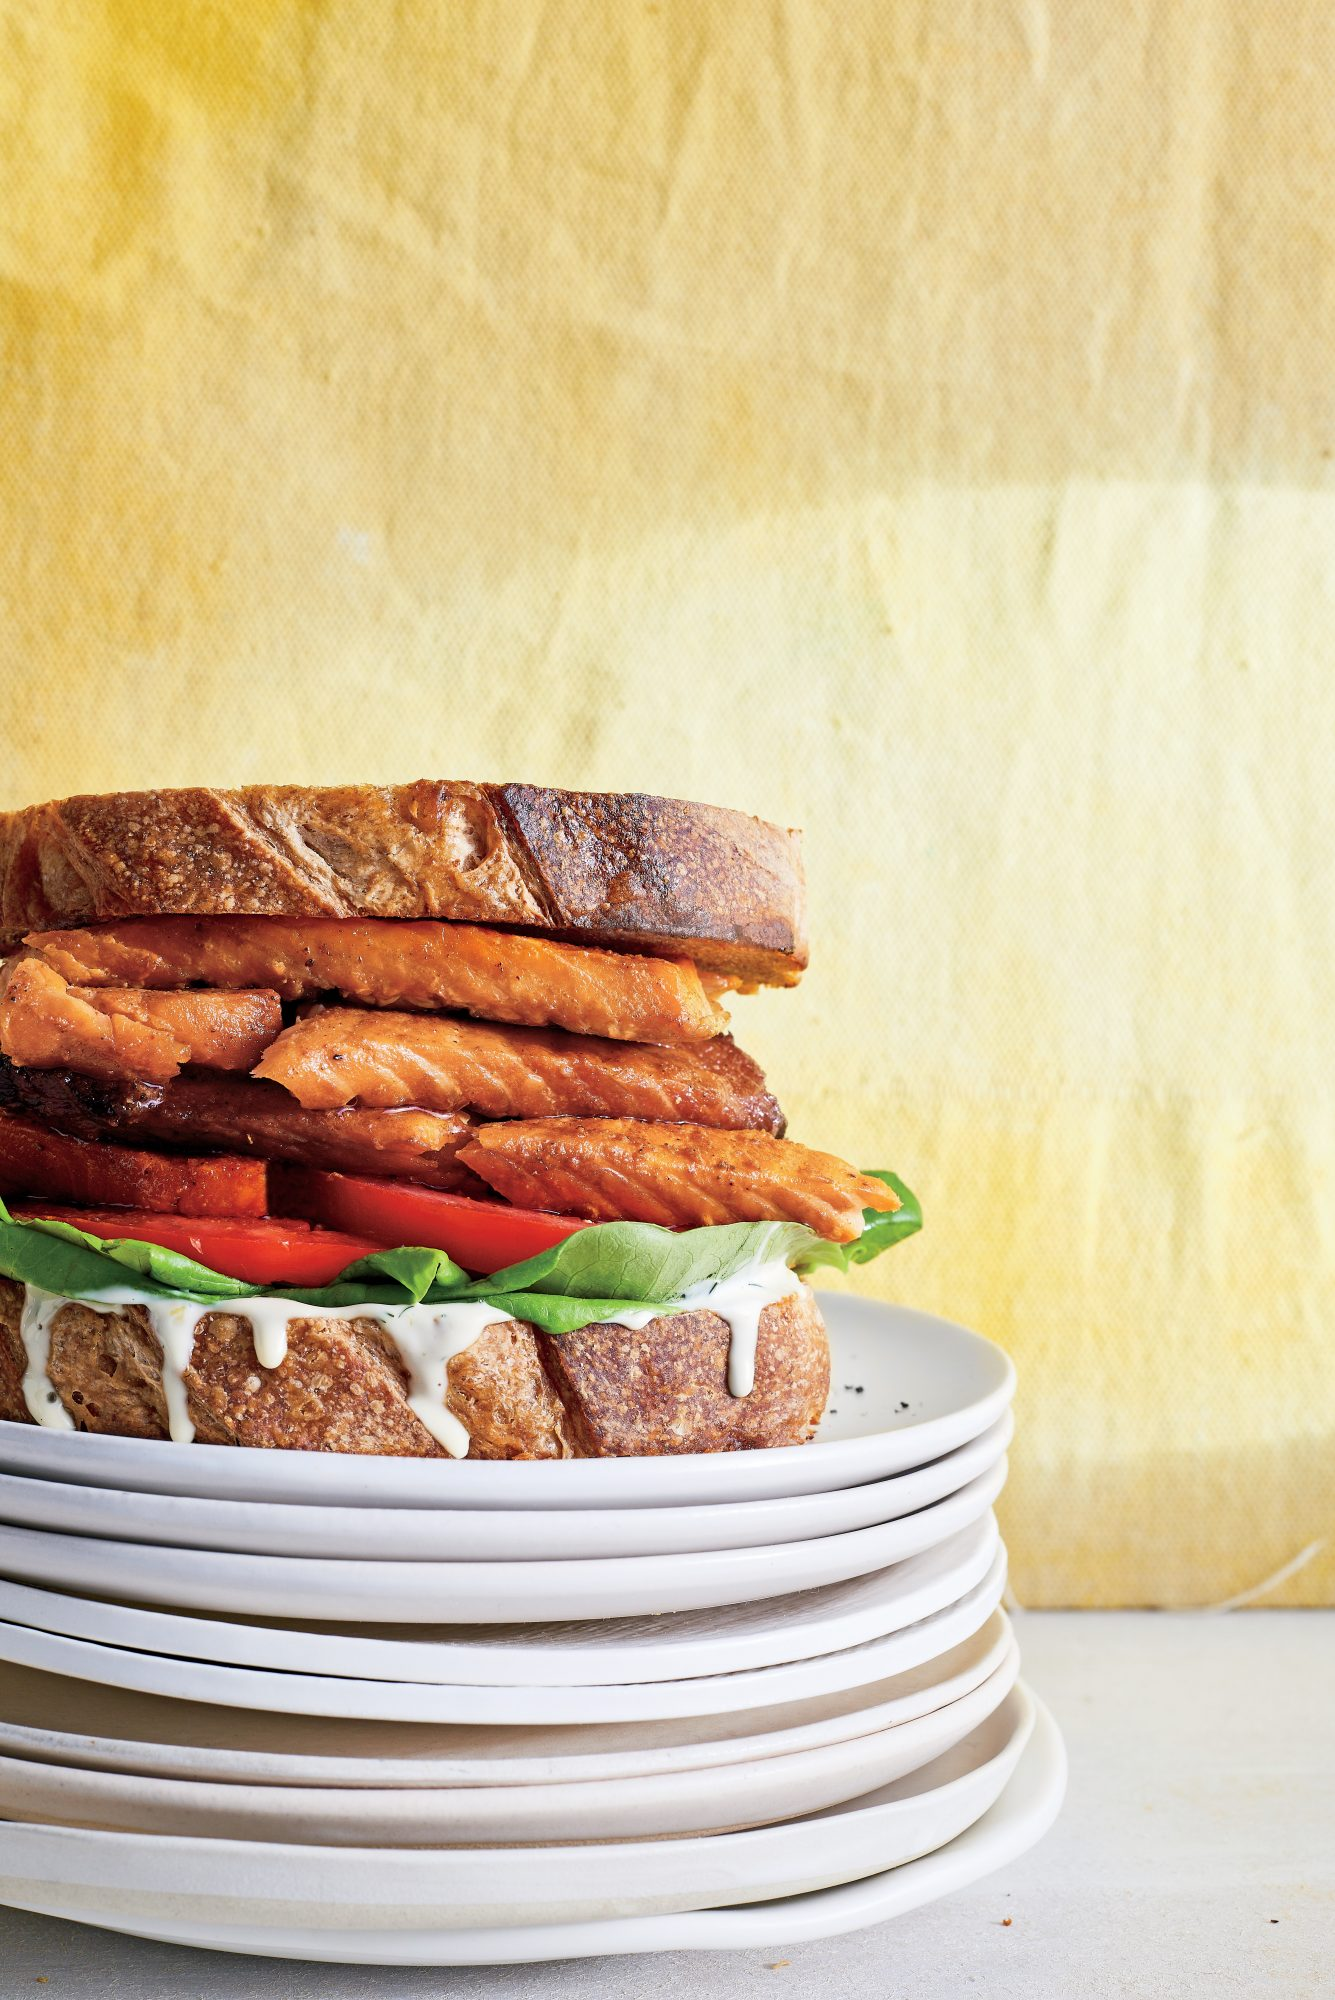 Salmon-Belly BLT with Lemon-Black Pepper Mayo